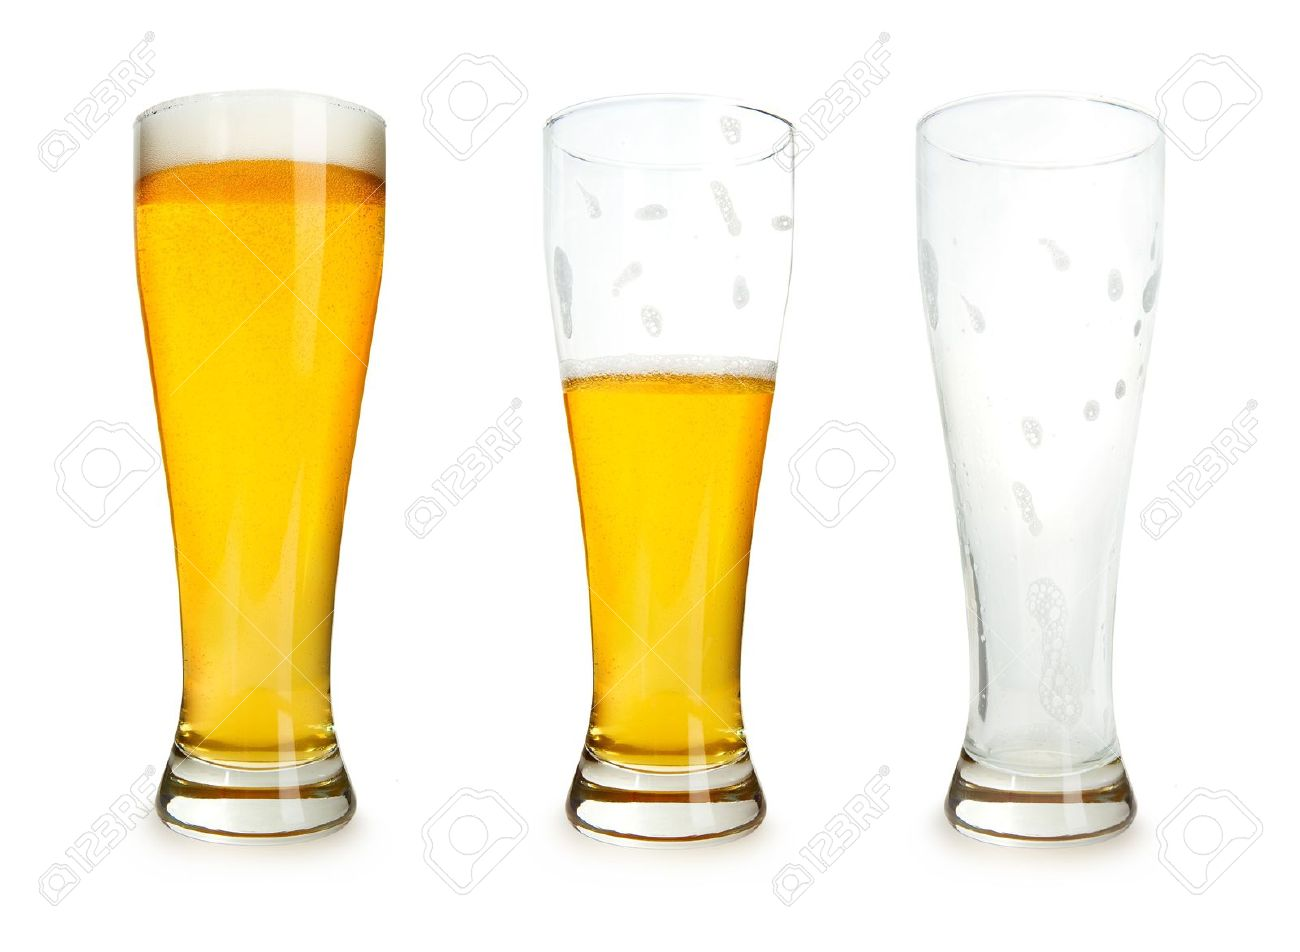 Three glasses of beer with one full, one half gone, and one empty on a white background. Stock Photo - 6817965